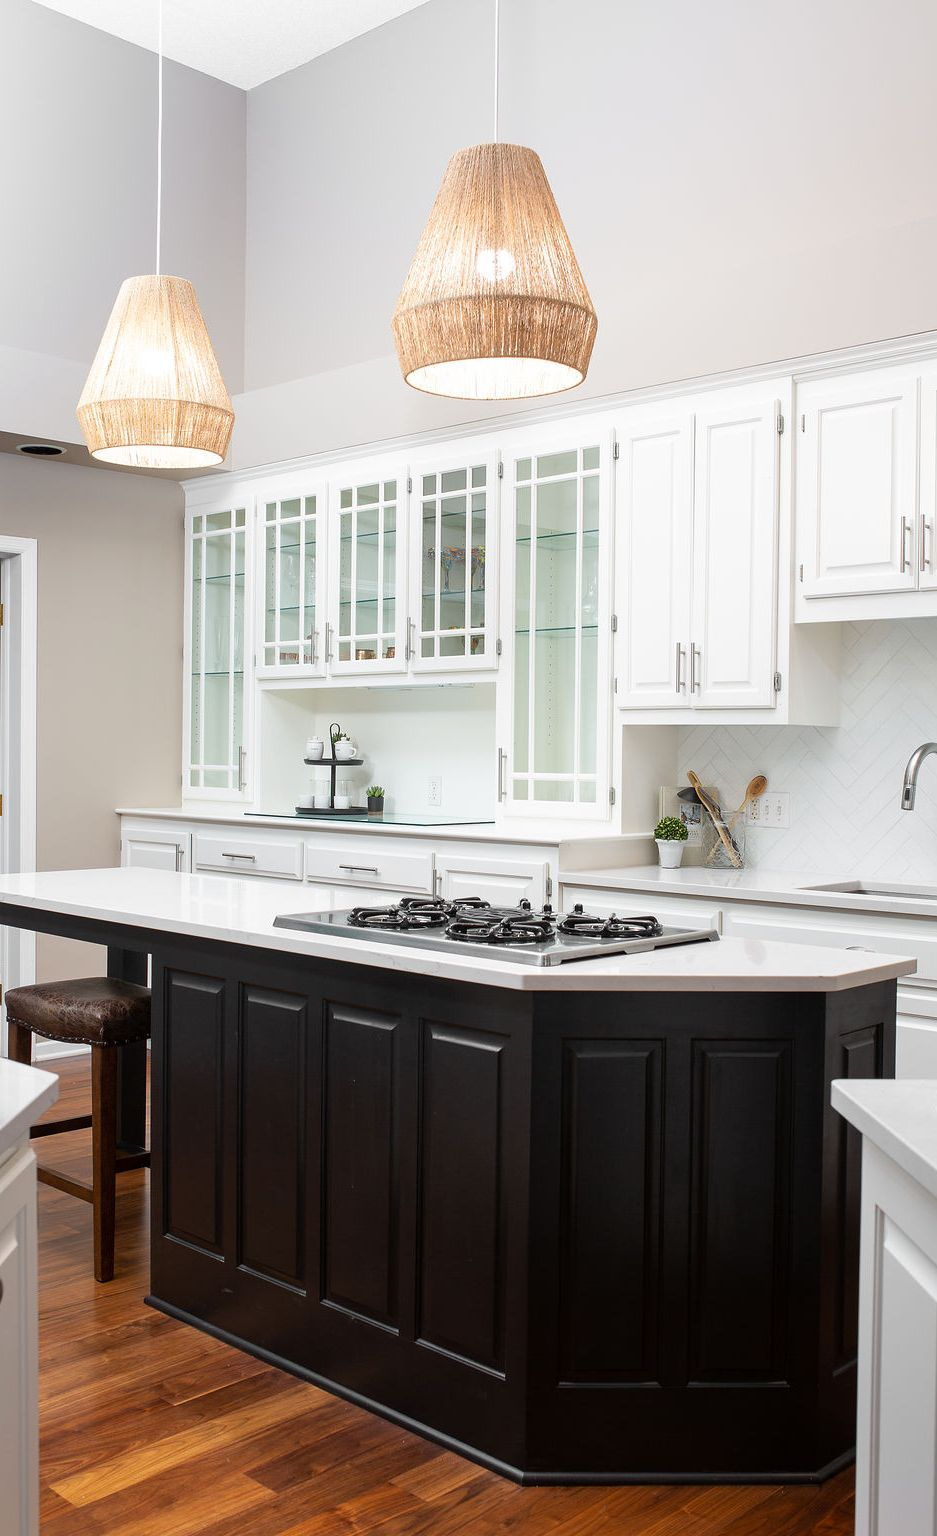 Pendant lights and dark cabinetry create a focal point for the Ella-topped kitchen island.